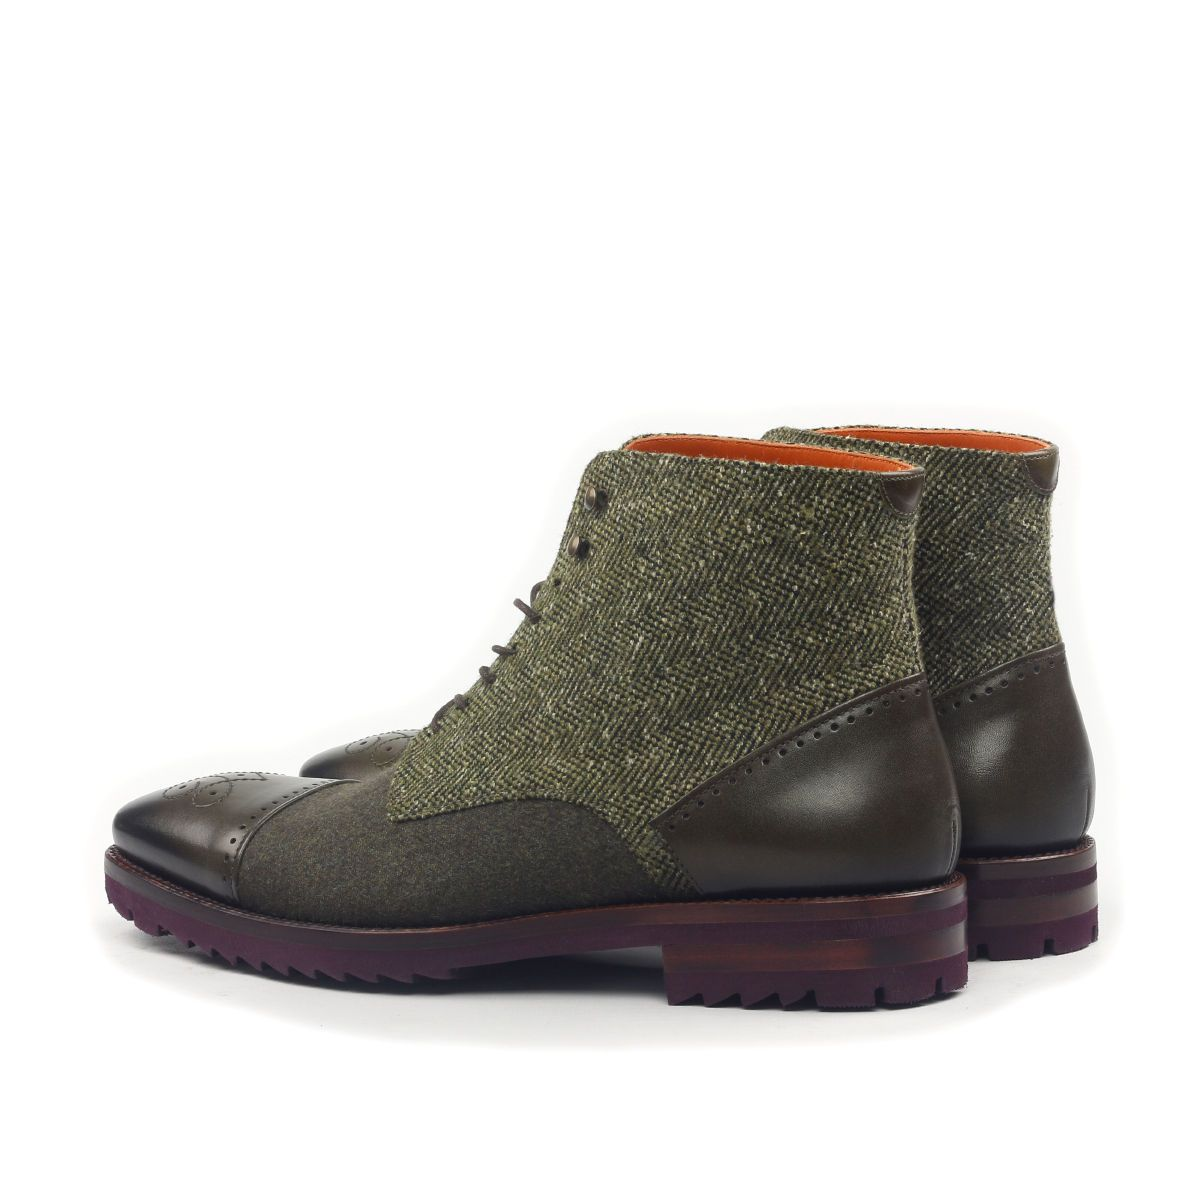 Omine Perforated Cap Toe Chukka Boot